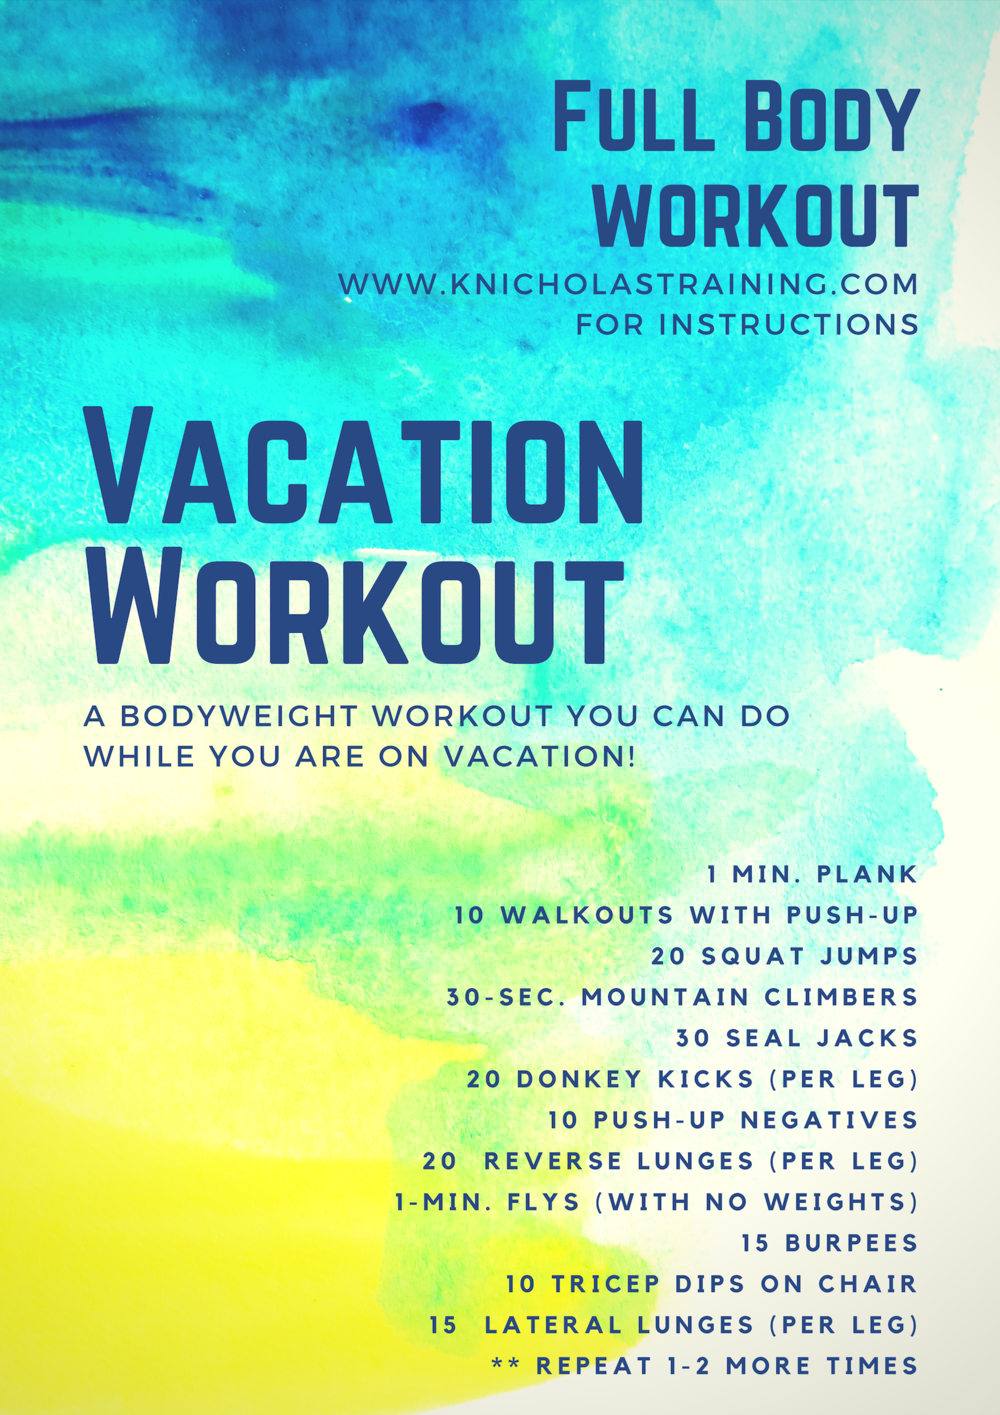 This is my go-to vacation workout. I feel great after I am done, and it only takes 20 minutes.